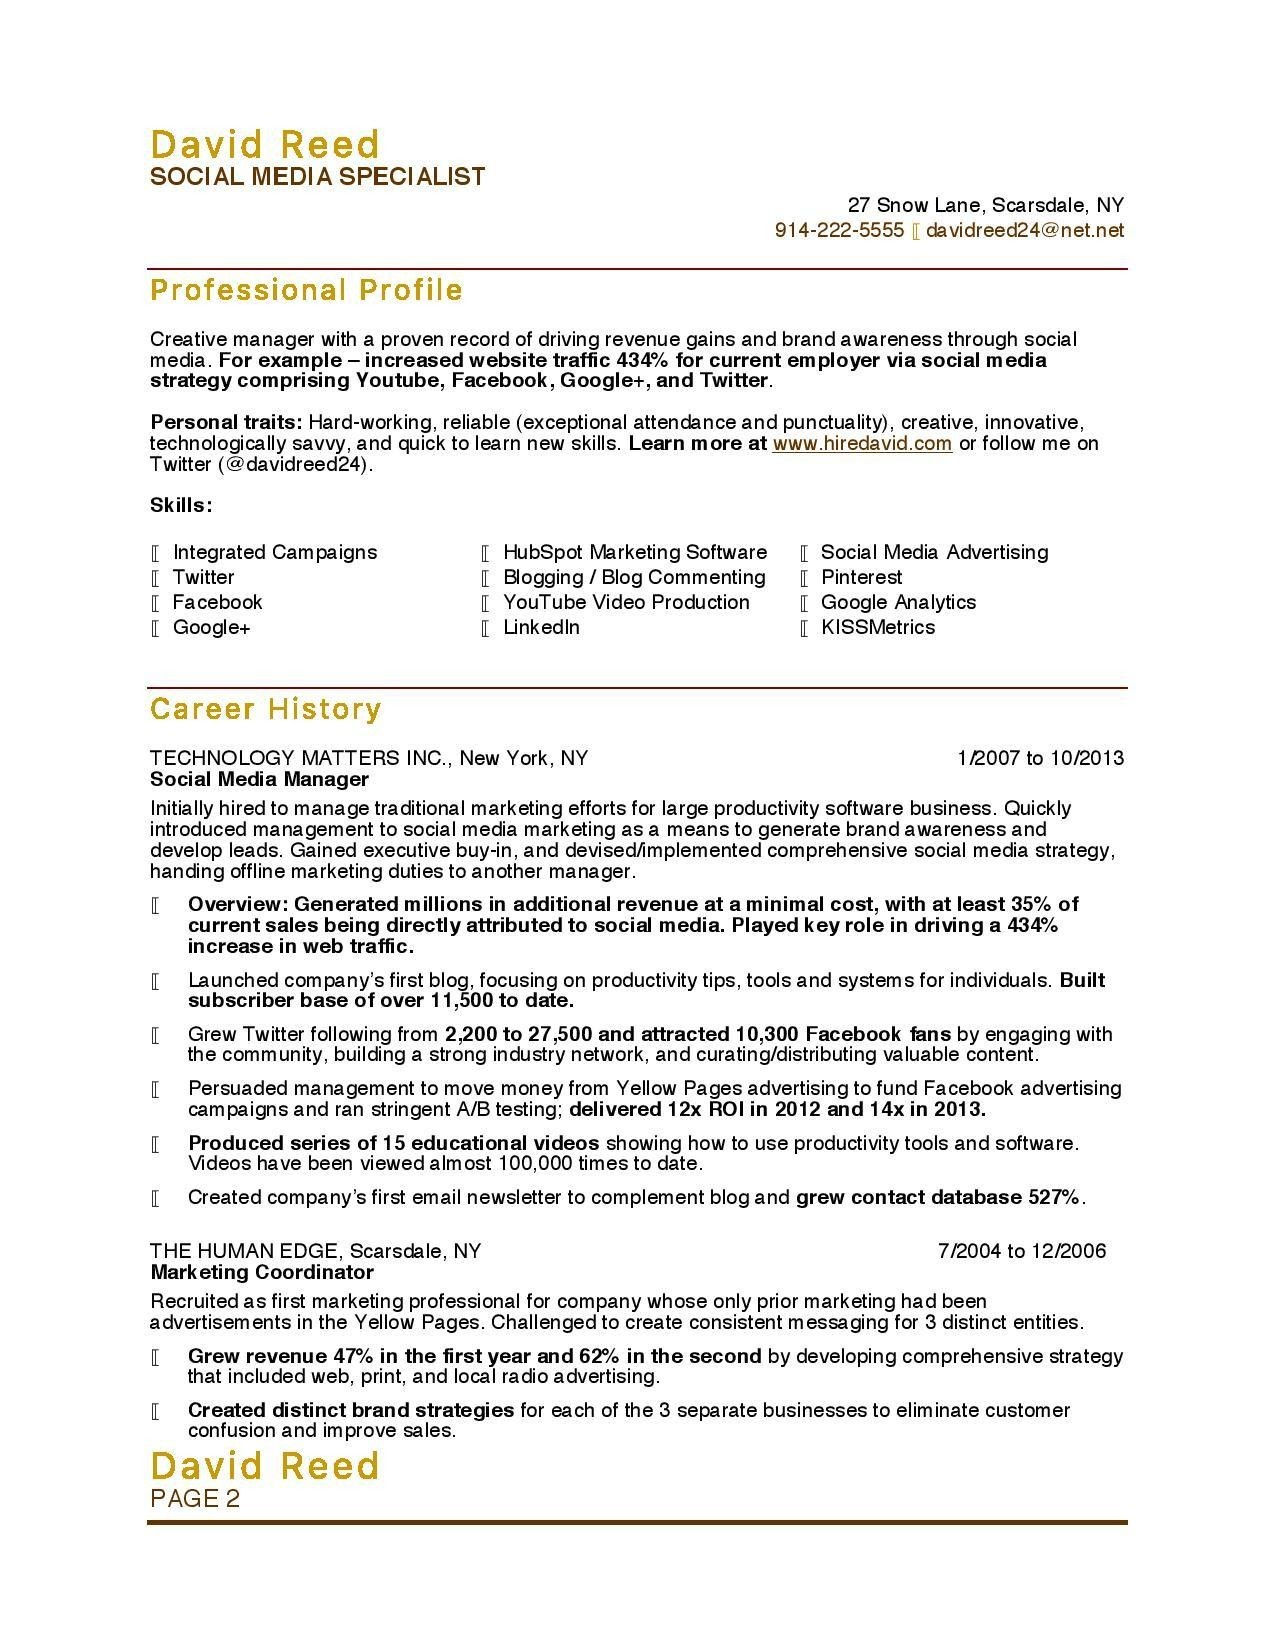 Social Media Specialist Resume Sample - Marketing Resume Samples Luxury Luxury Grapher Resume Sample